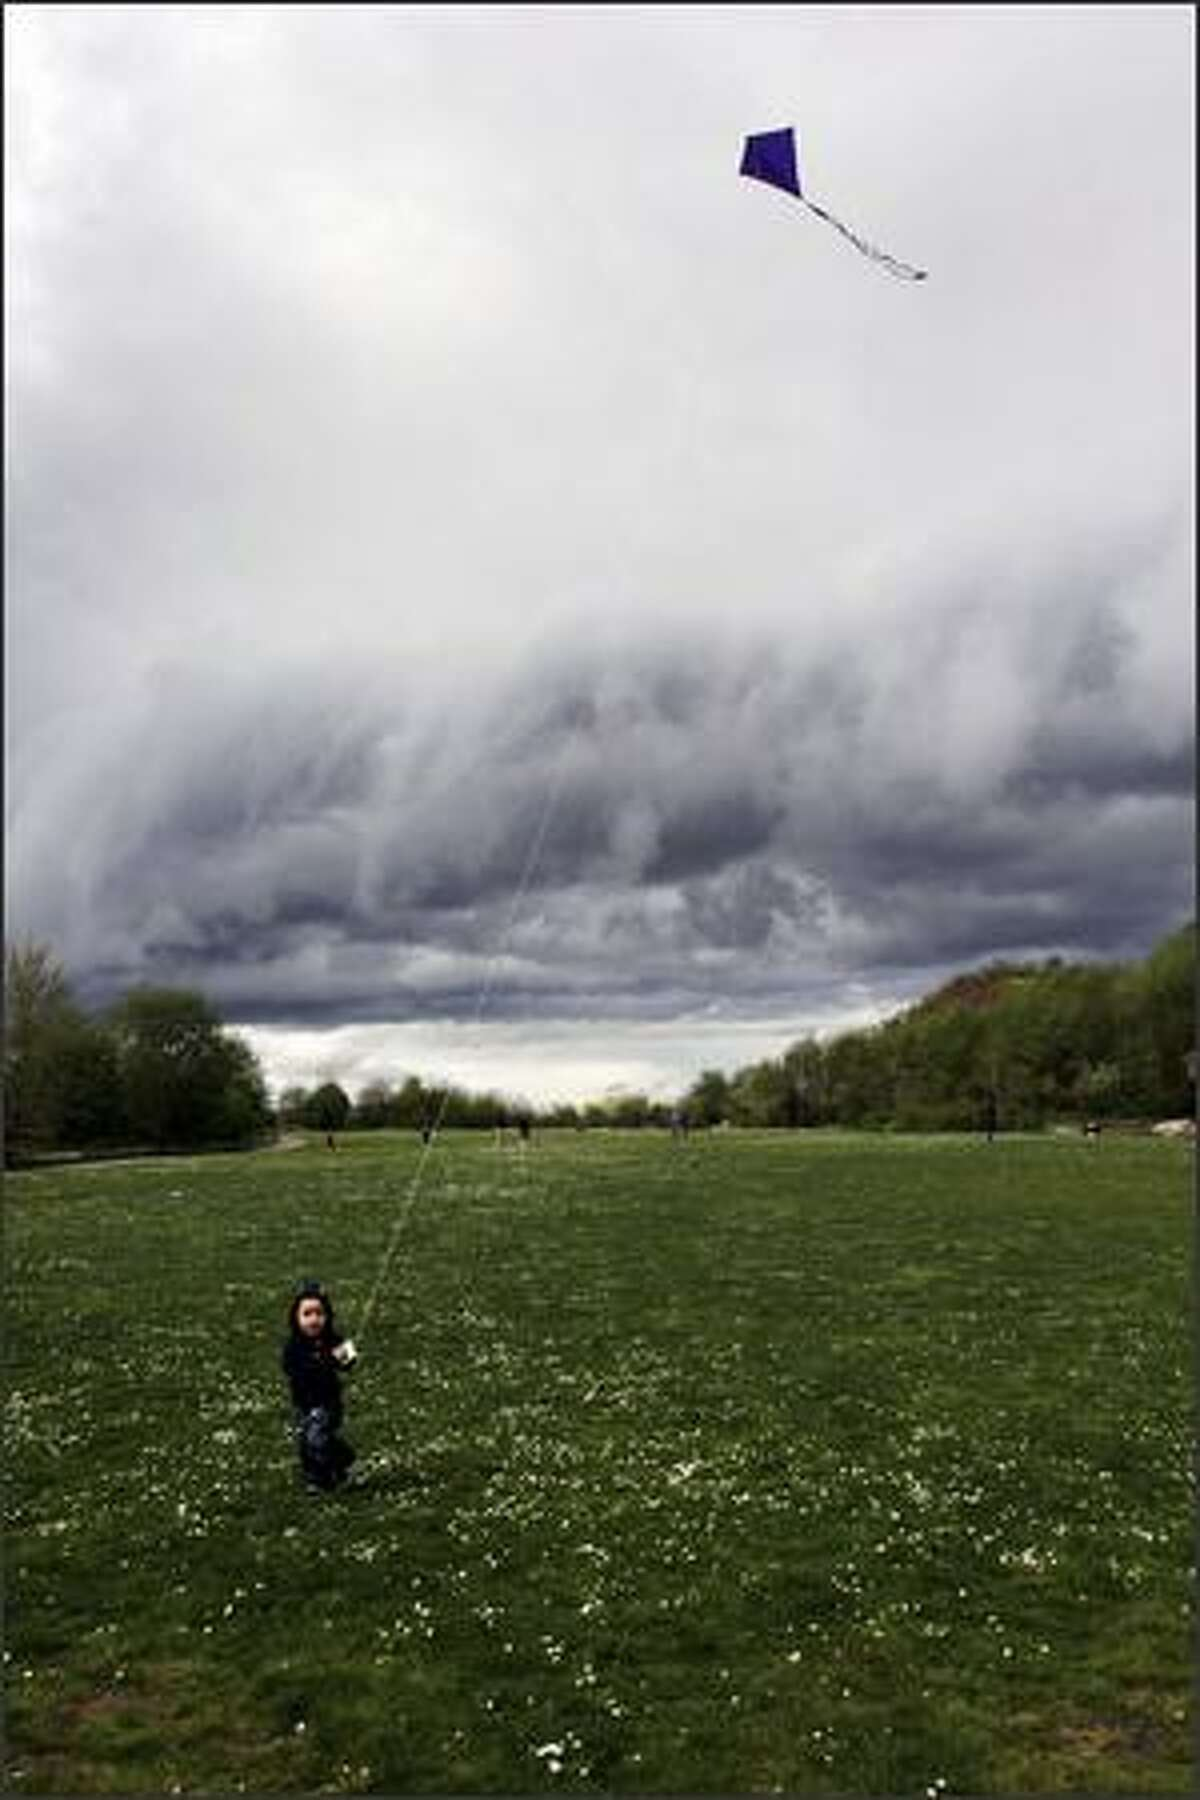 Rocco Marckx, 2, of Seattle didn't care about the roiling clouds behind him while flying his kite at Golden Gardens Park.